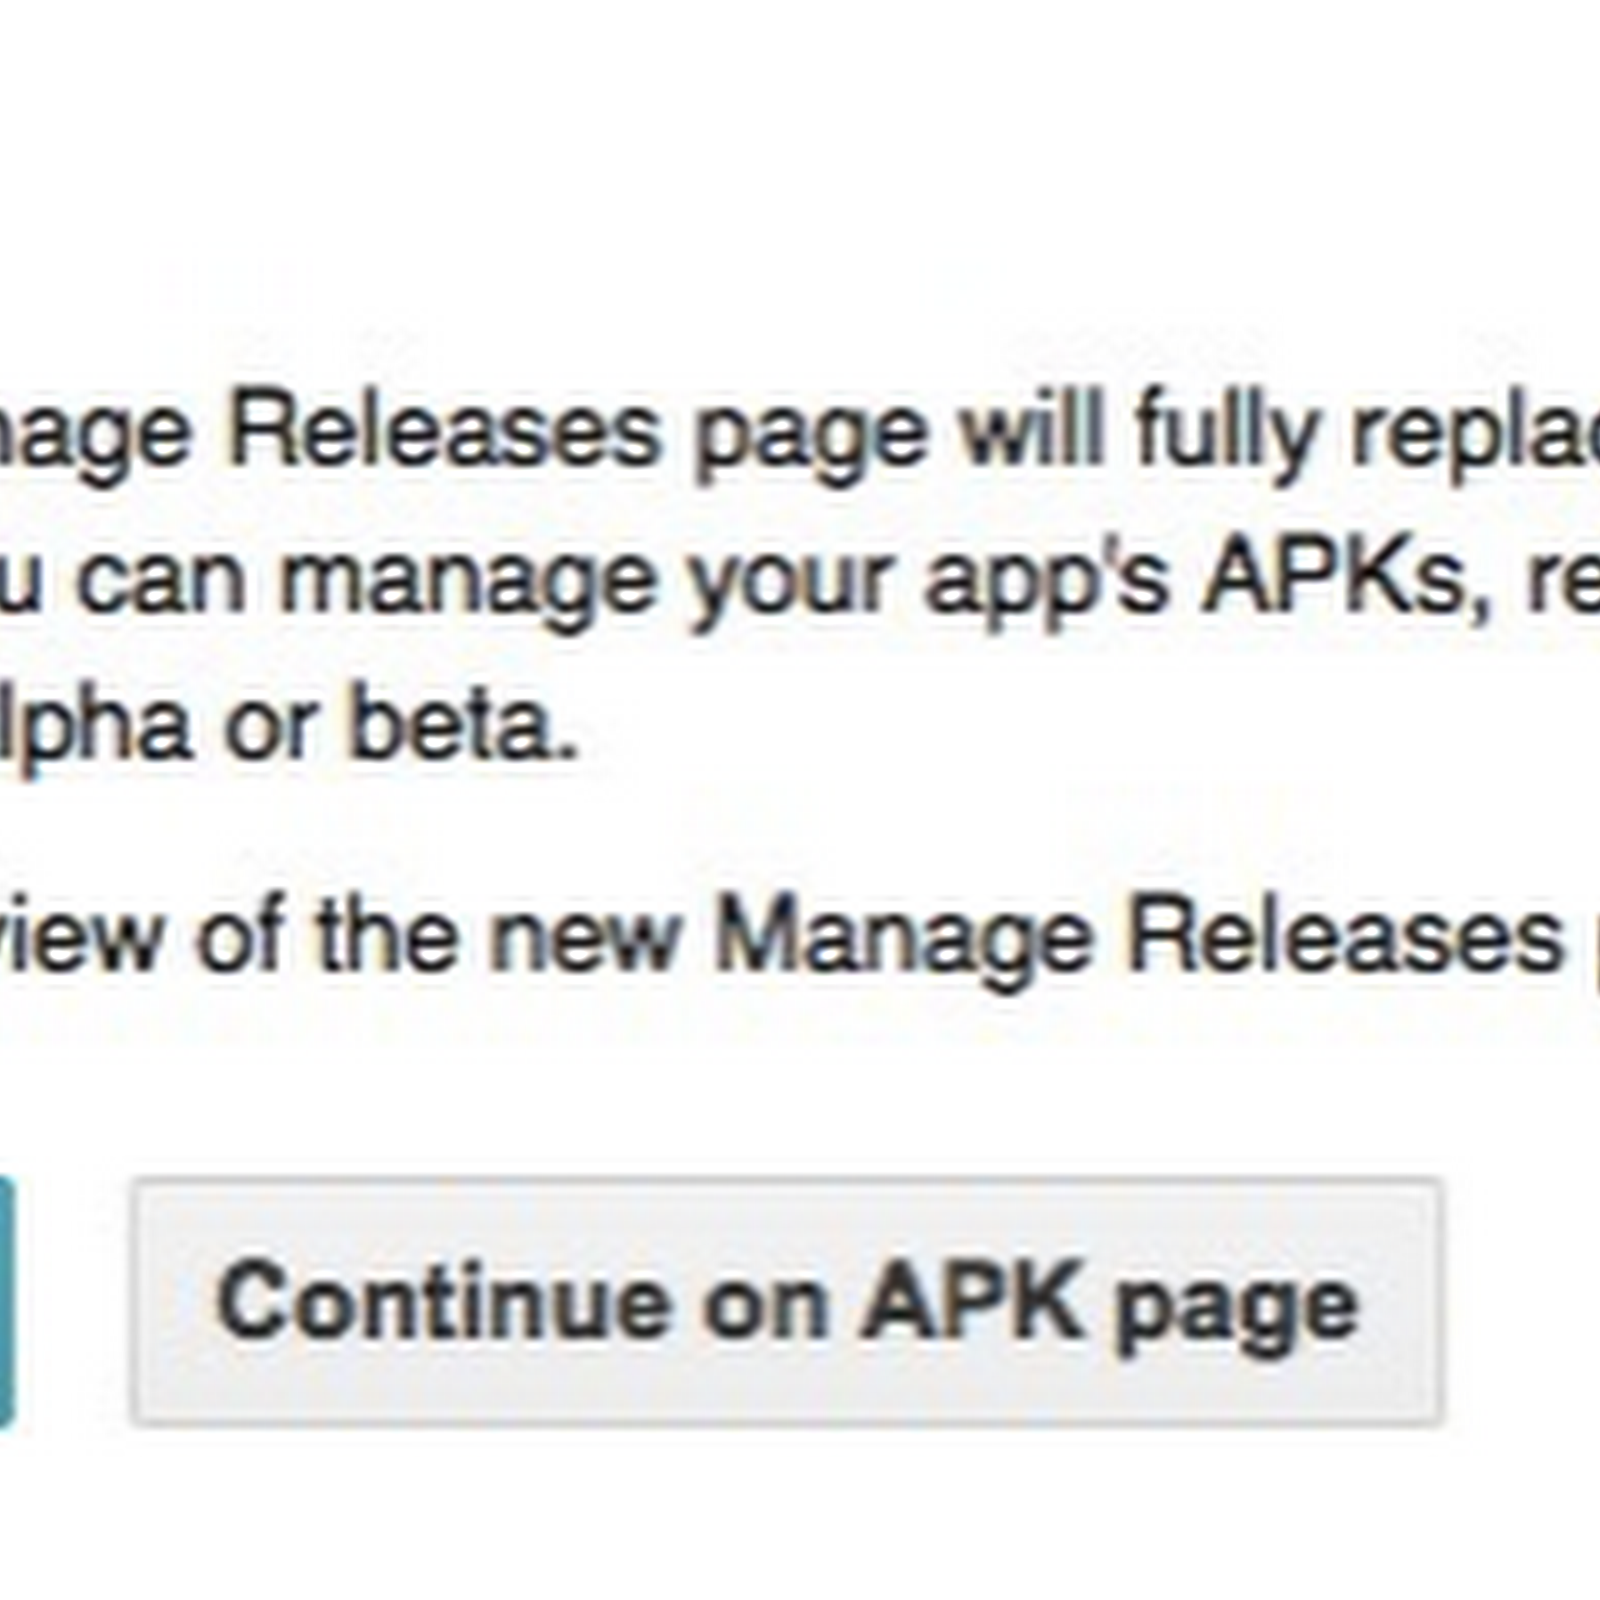 Manage Releases will replace APK page